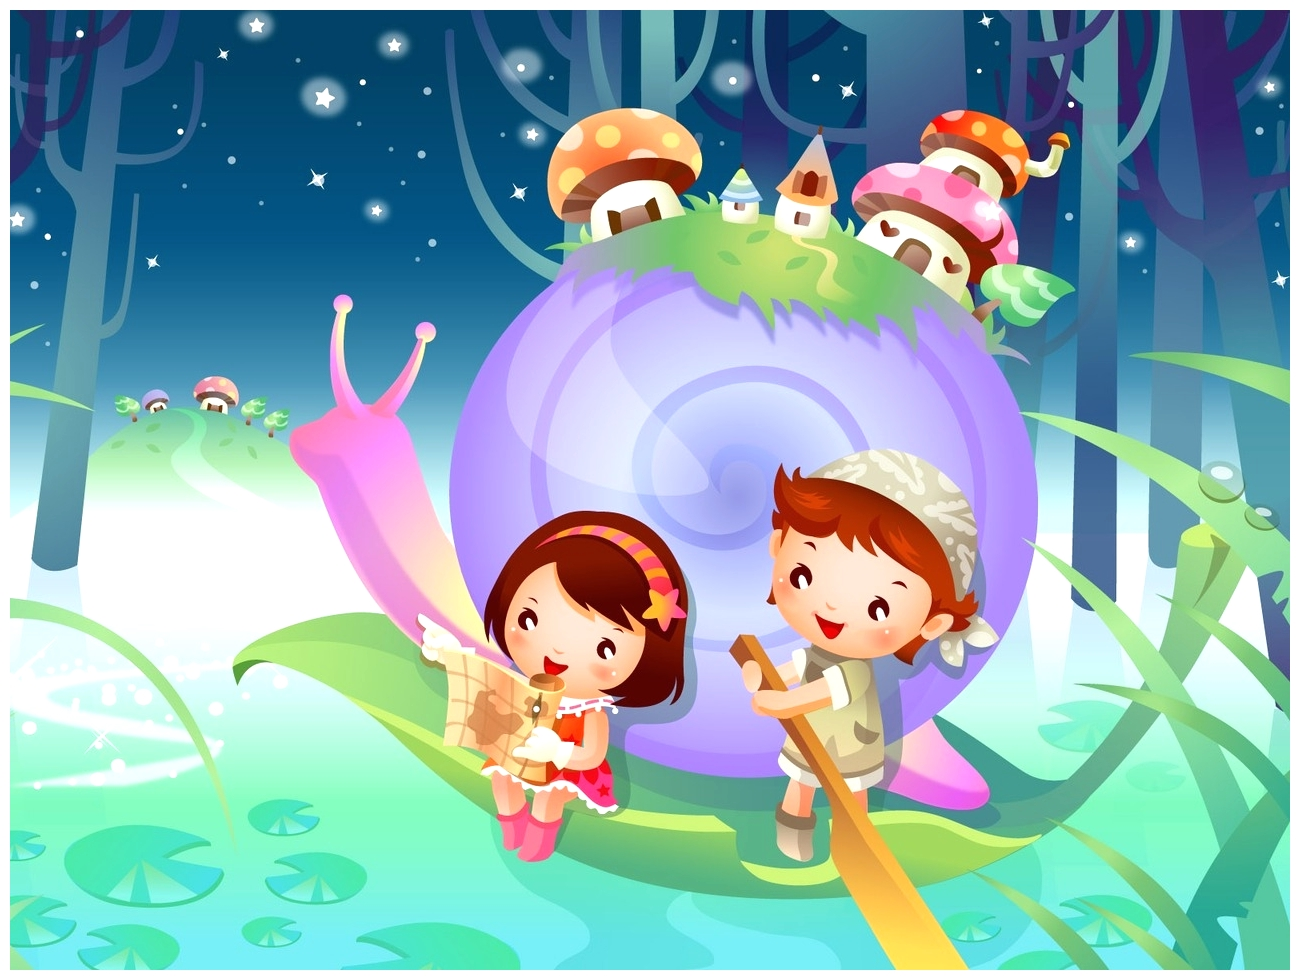 Beautiful cartoon wallpaper hd for kids free download hd - Cute cartoon hd images ...